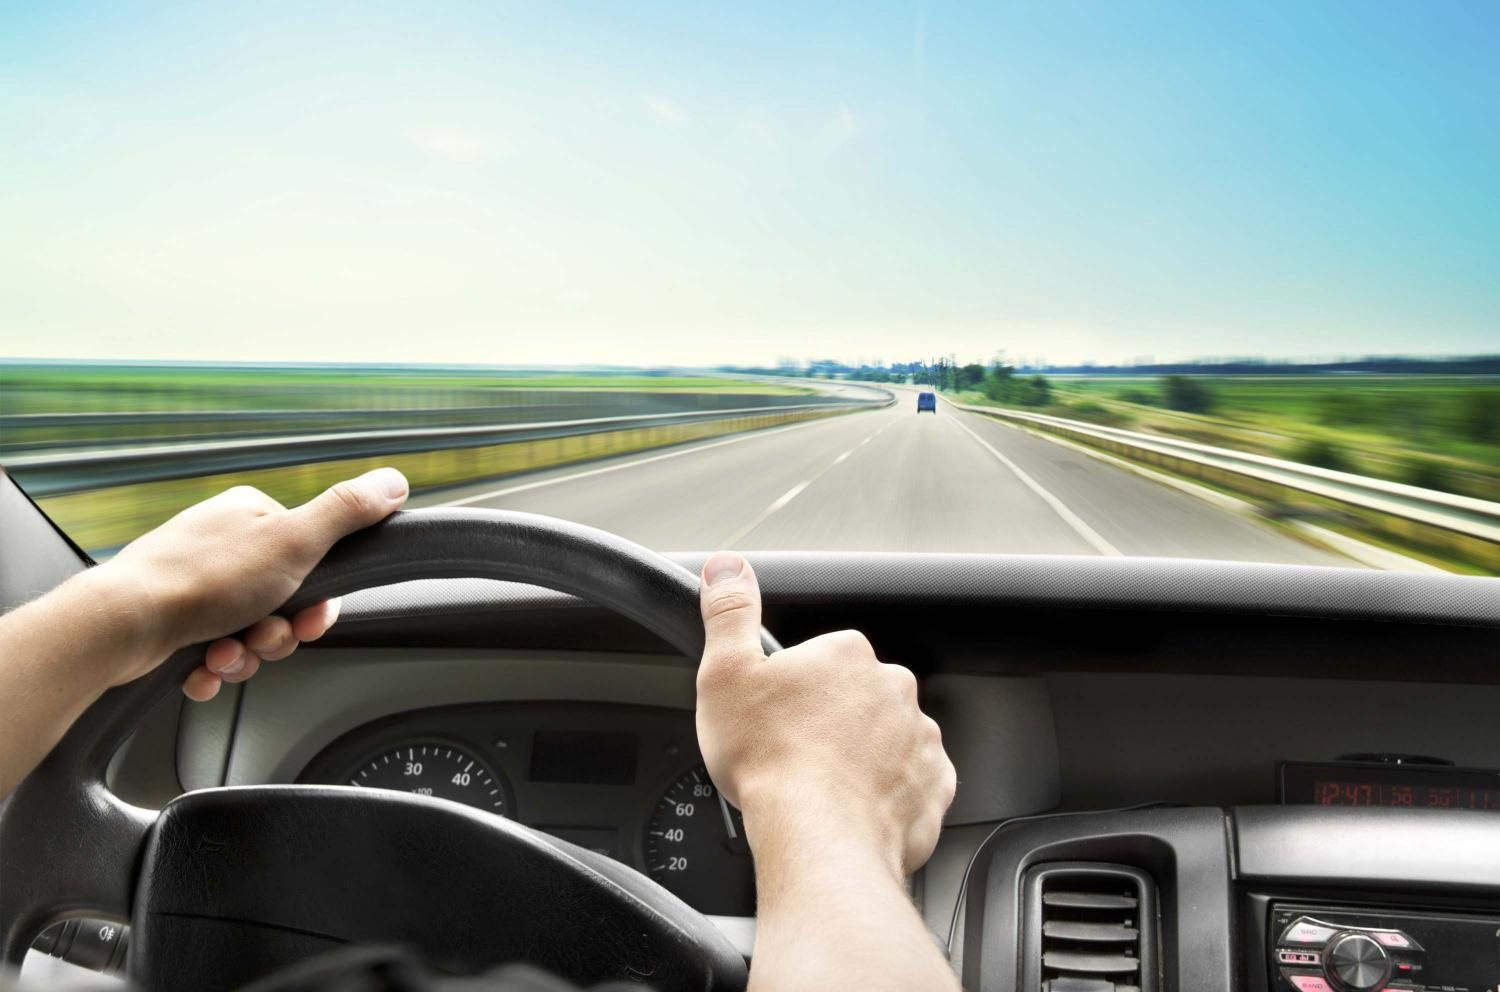 MONITORING OF VEHICLES IS APPROVED IN THE FIELD OF AUTO INSURANCE